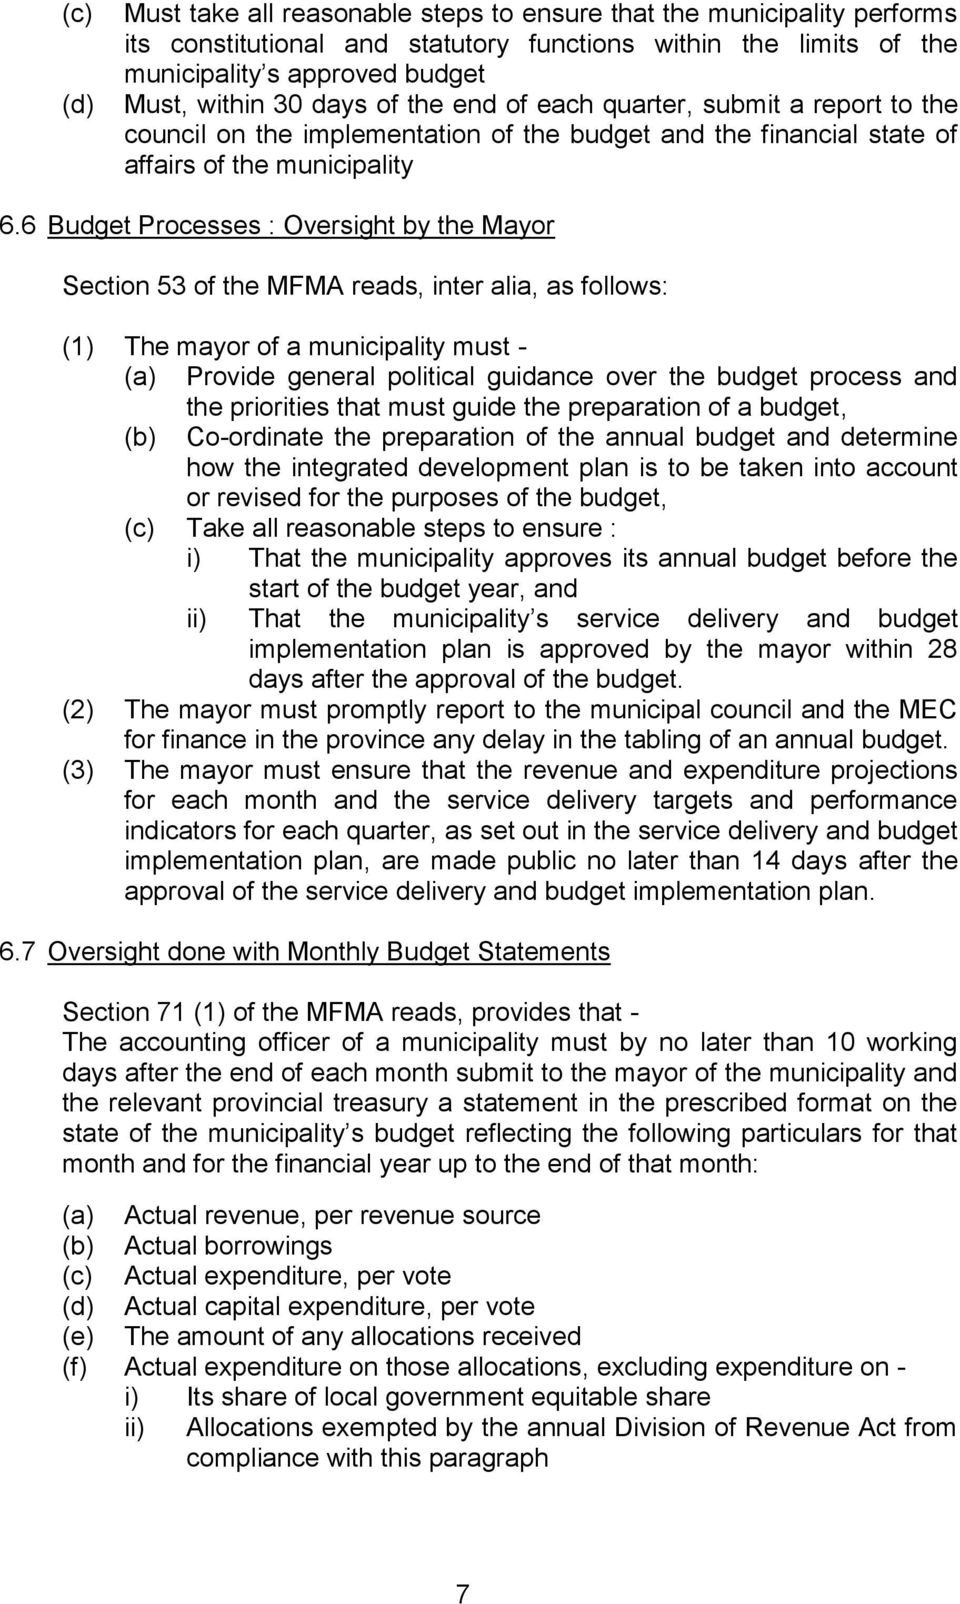 6 Budget Processes : Oversight by the Mayor Section 53 of the MFMA reads, inter alia, as follows: (1) The mayor of a municipality must - Provide general political guidance over the budget process and